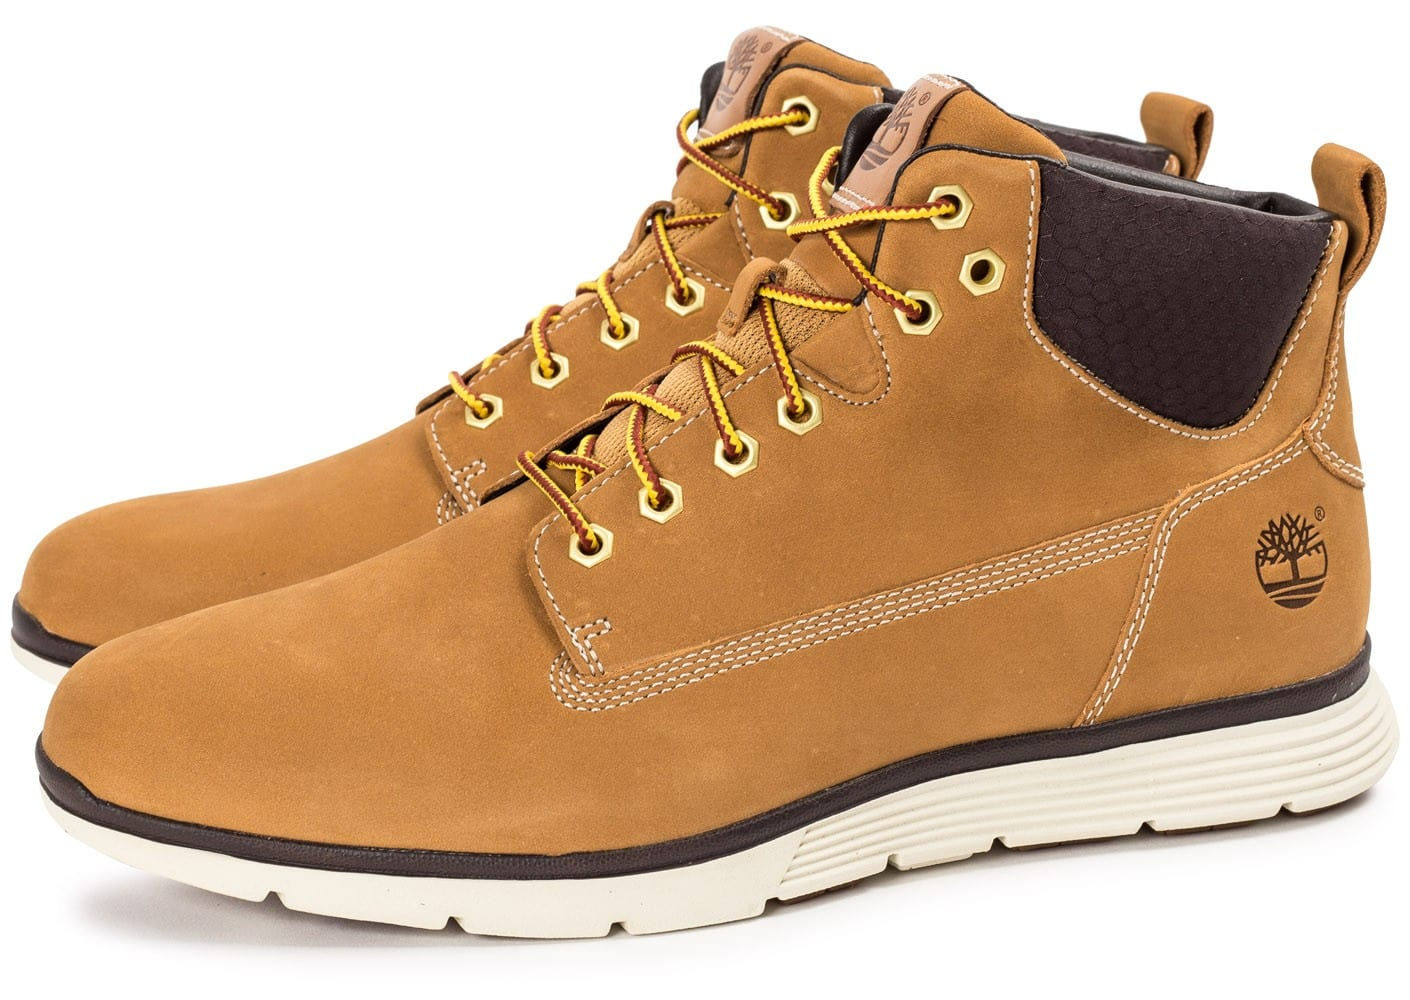 Timberland Killington Chukka Beige 30Wm7